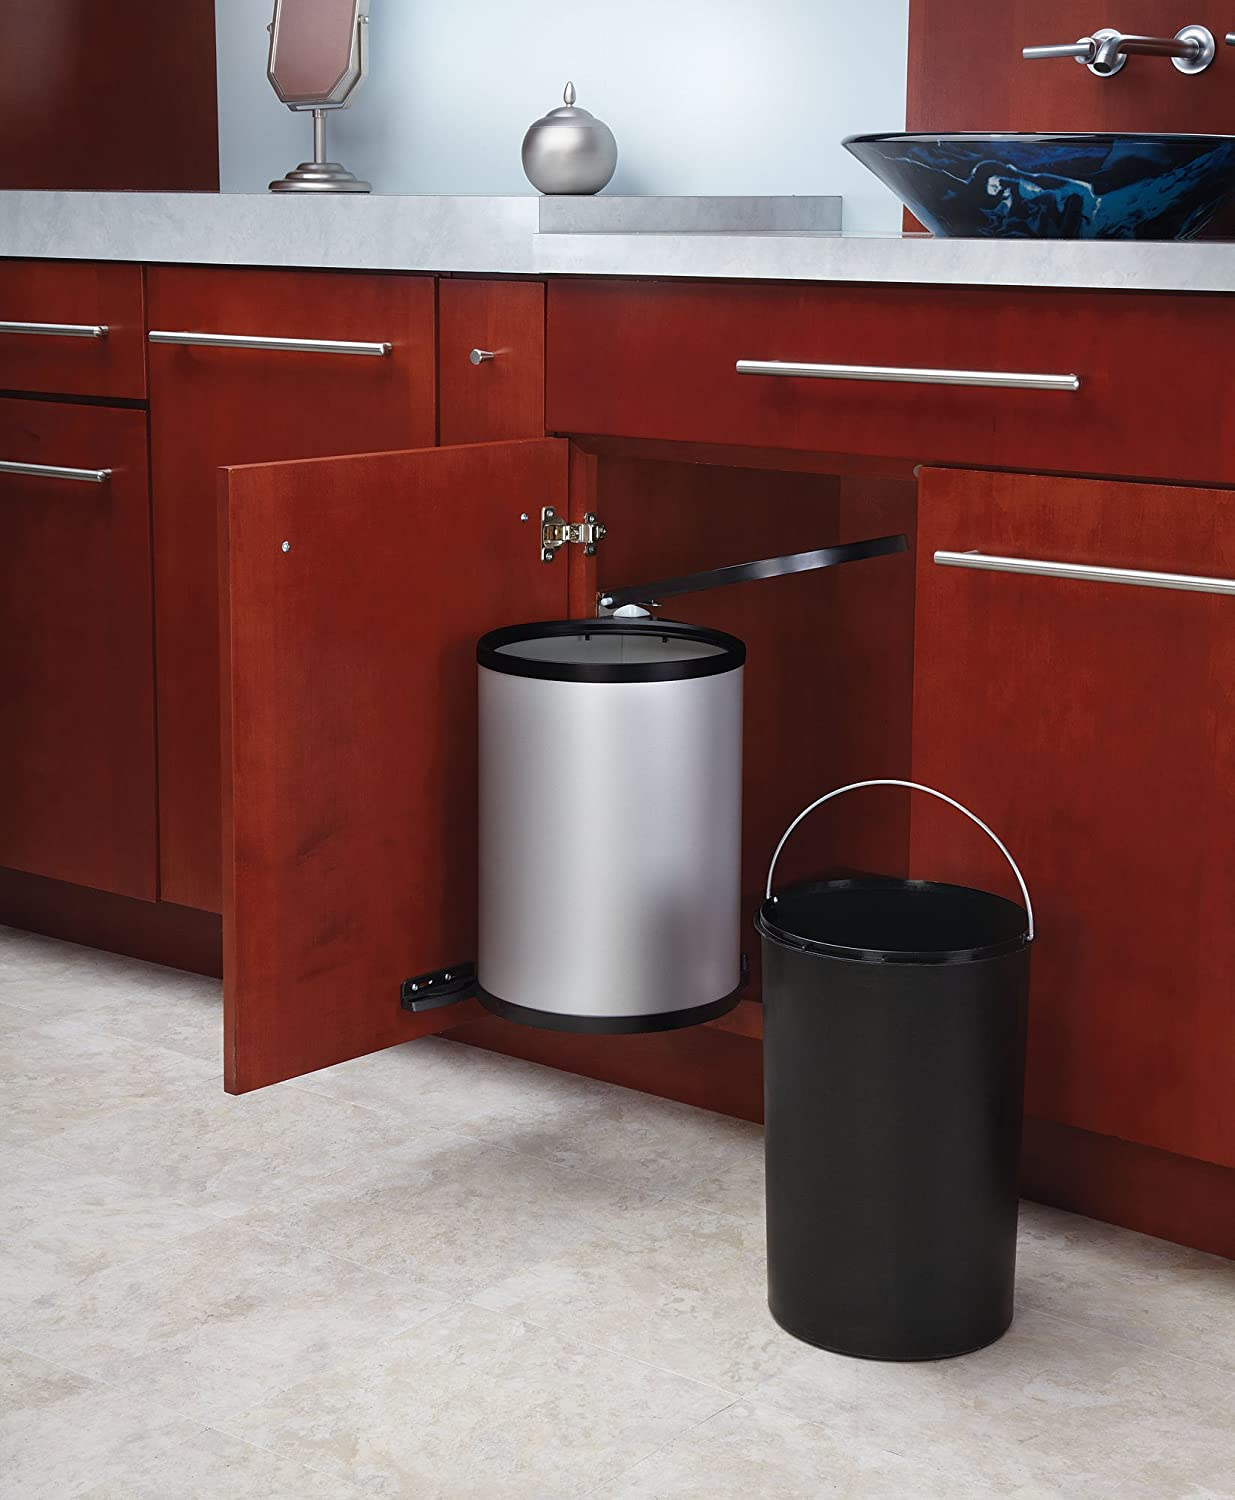 base home size of restaurant bins full trash the recycling inspirations image cabinets seemly cabinet can